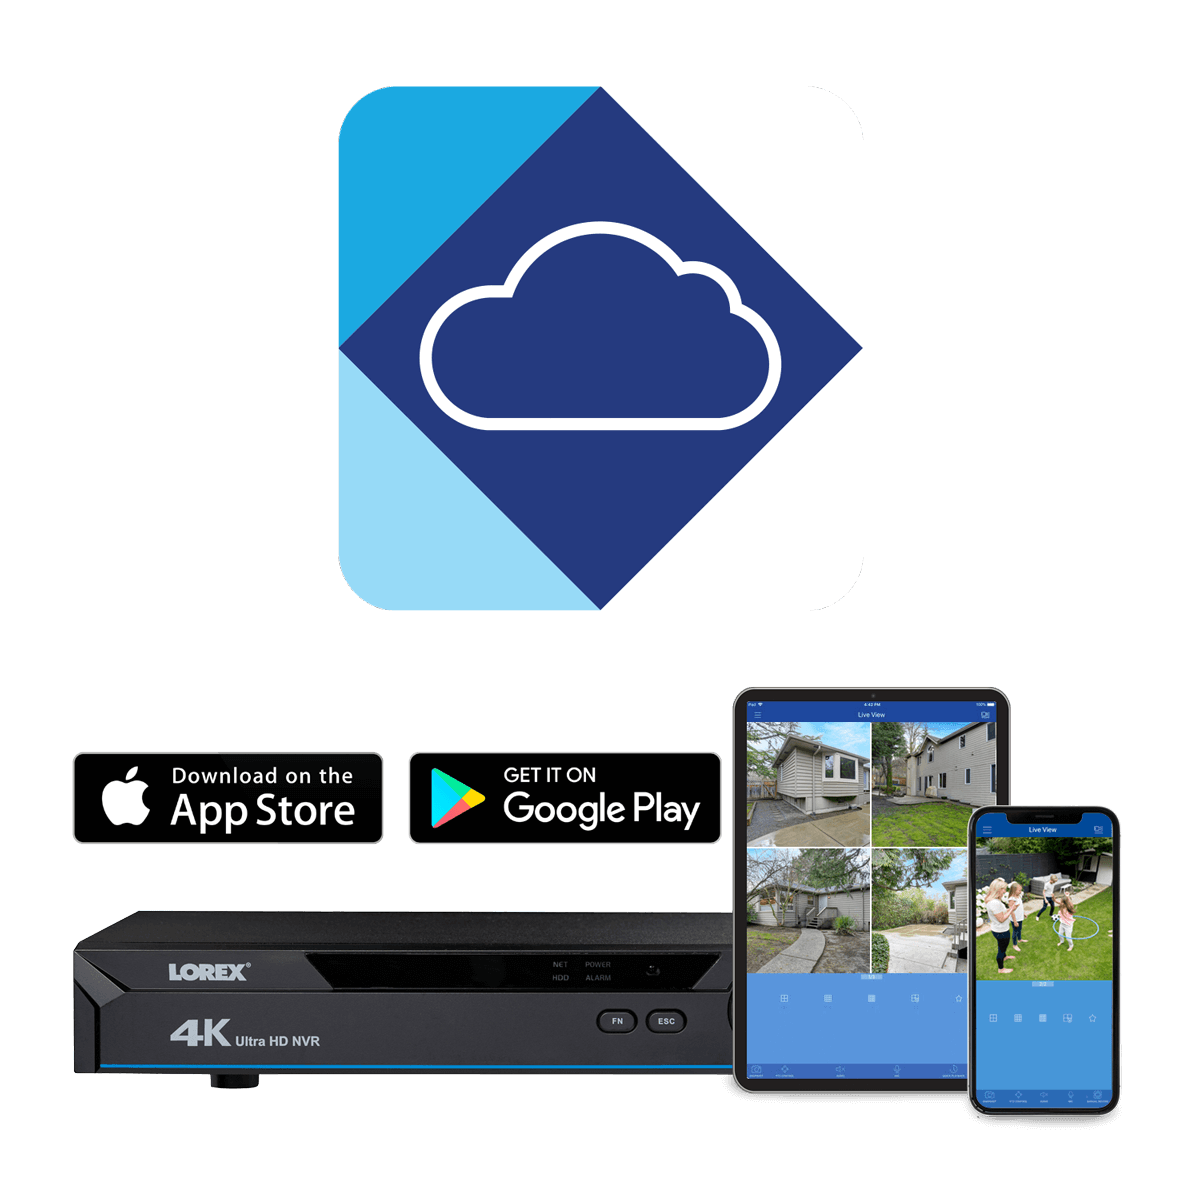 Lorex Cloud app for smartphones and tablets